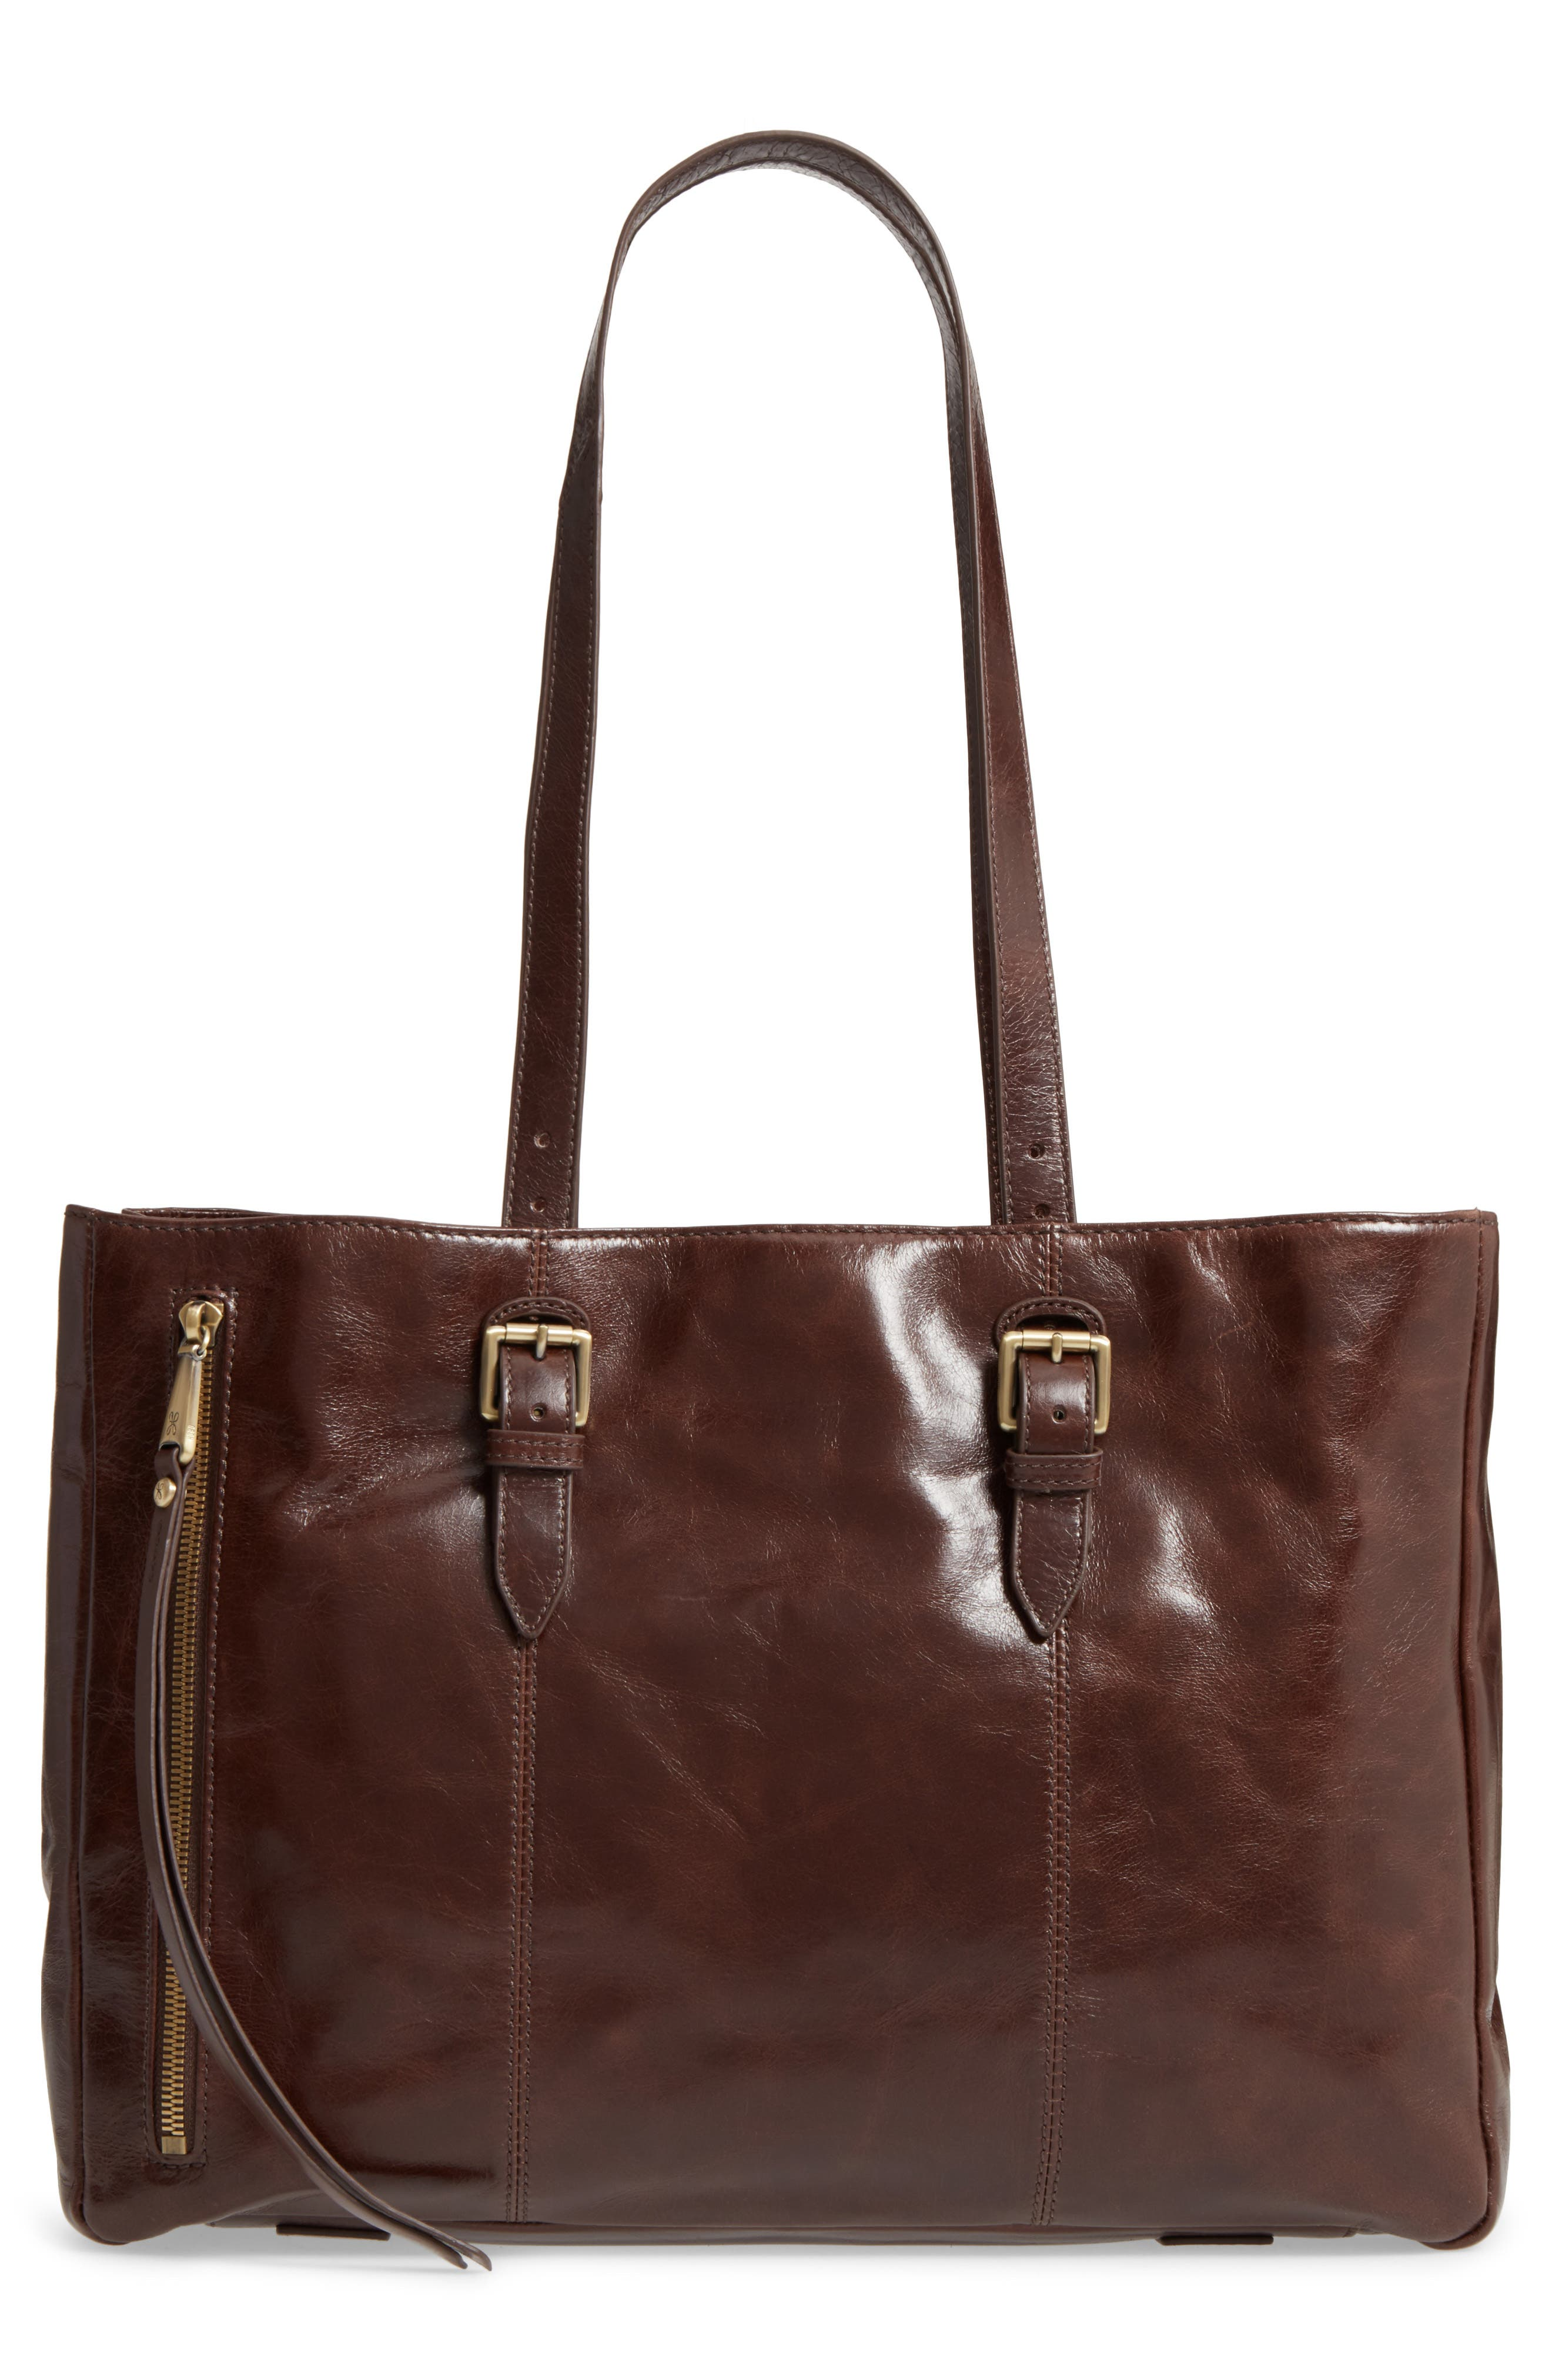 Main Image - Hobo Cabot Calfskin Leather Tote